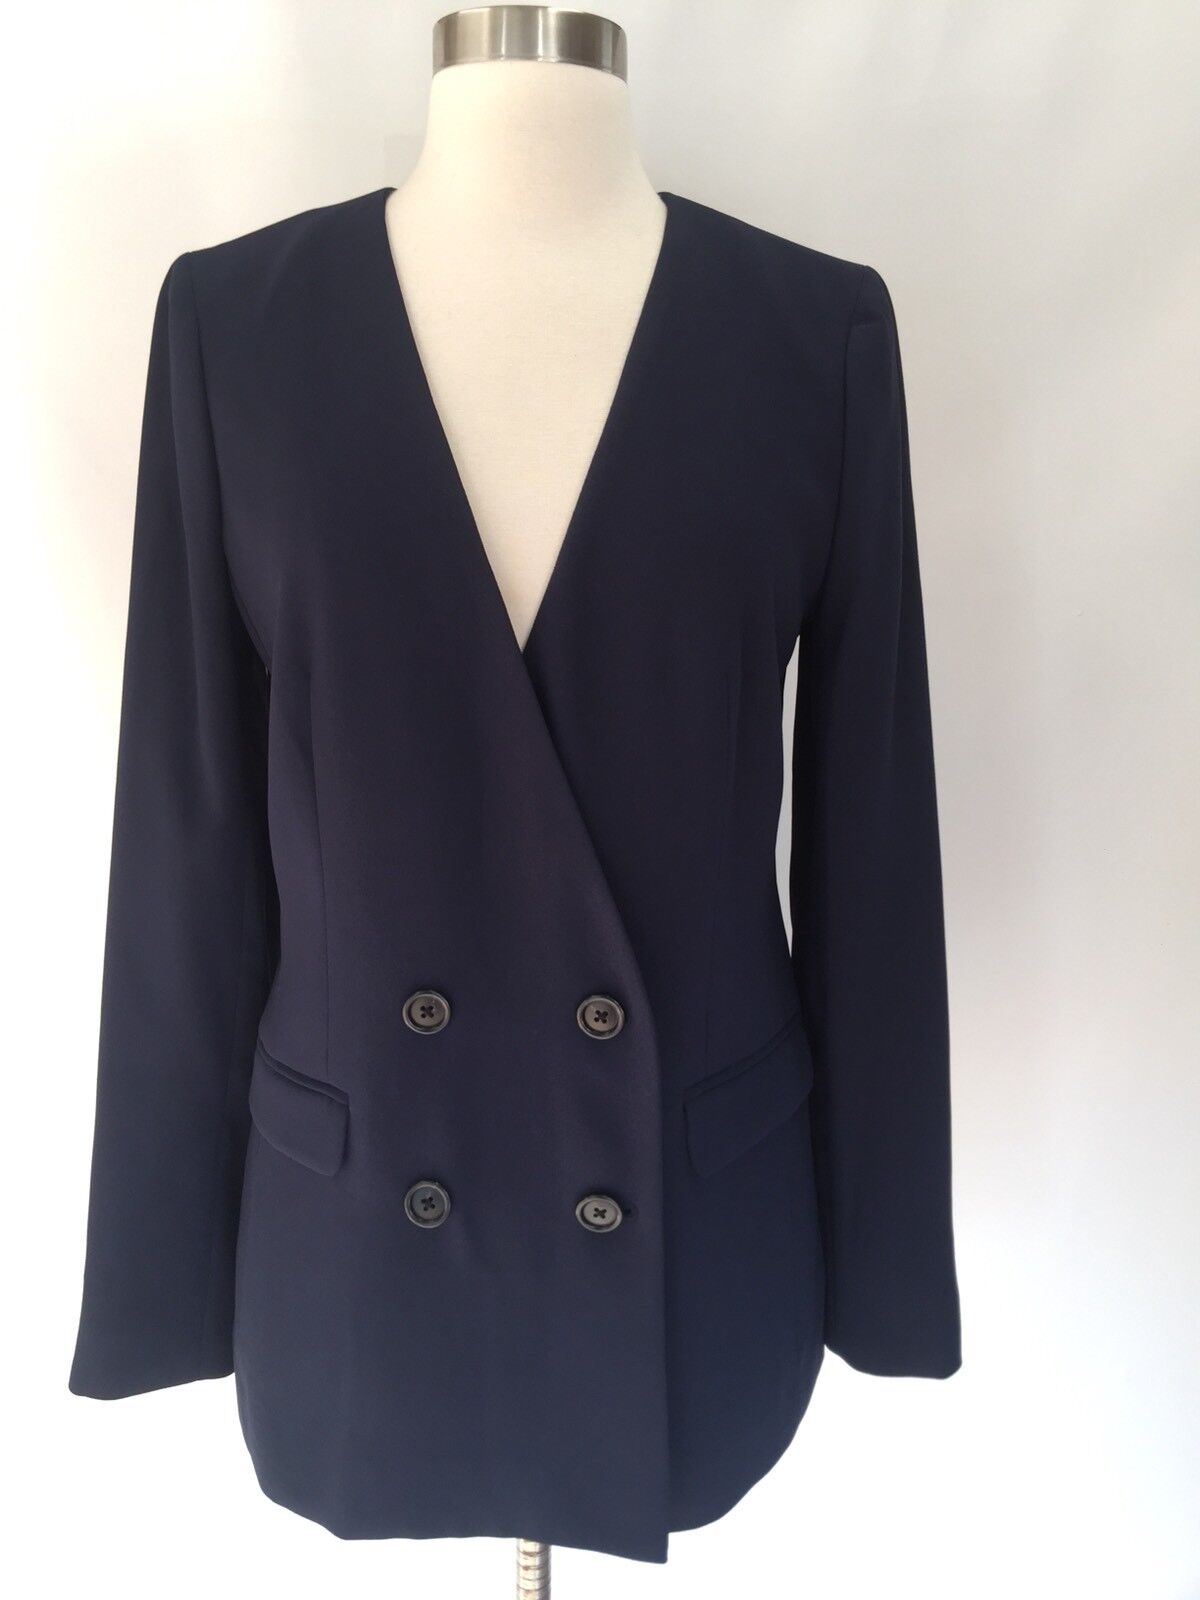 New JCREW French girl blazer in 365 crepe Navy bluee Size 4 H6285